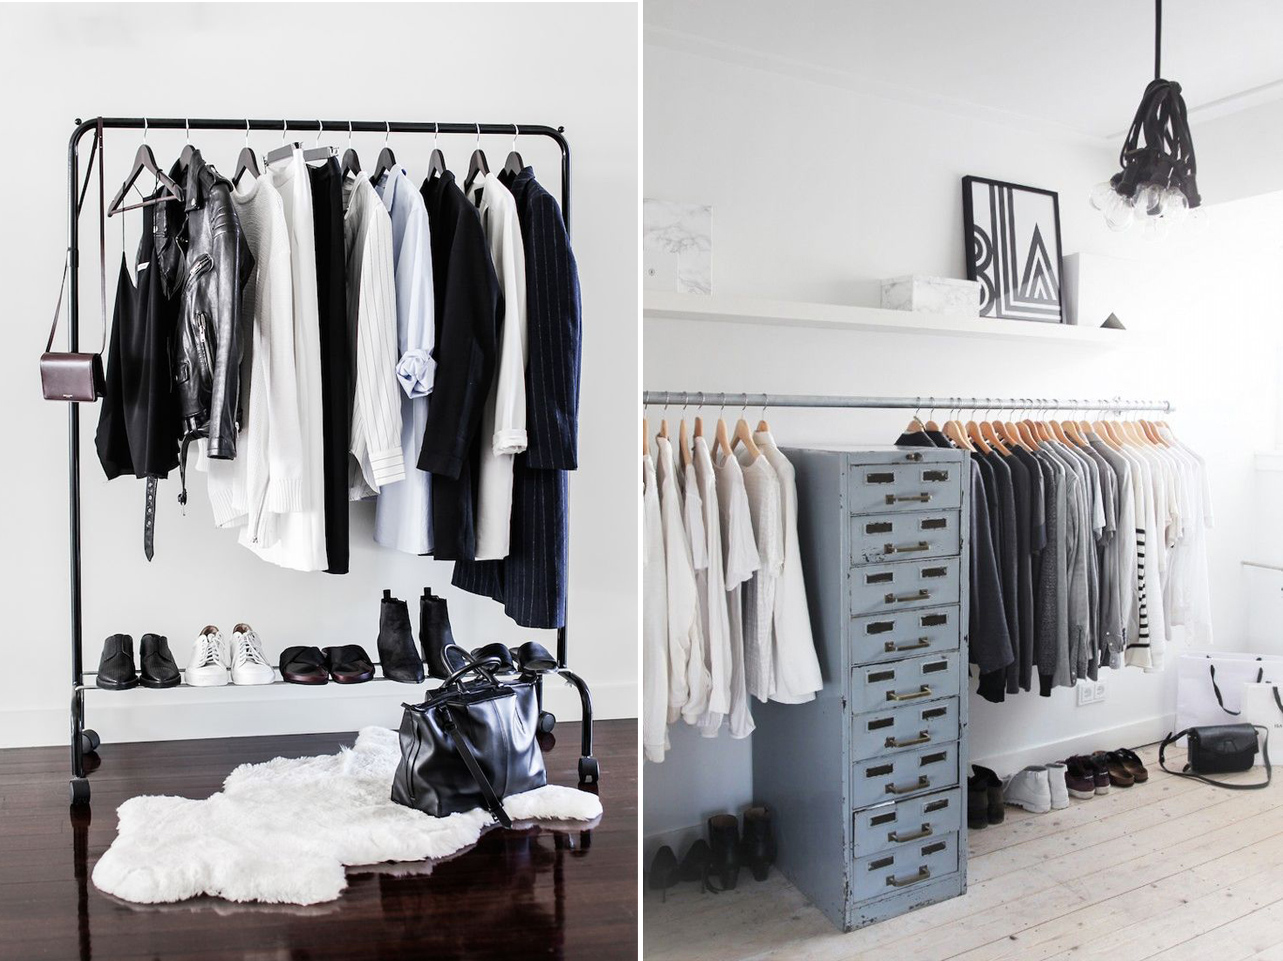 selecting a colour palette for your capsule wardrobe mademoiselle a minimalist fashion blog. Black Bedroom Furniture Sets. Home Design Ideas